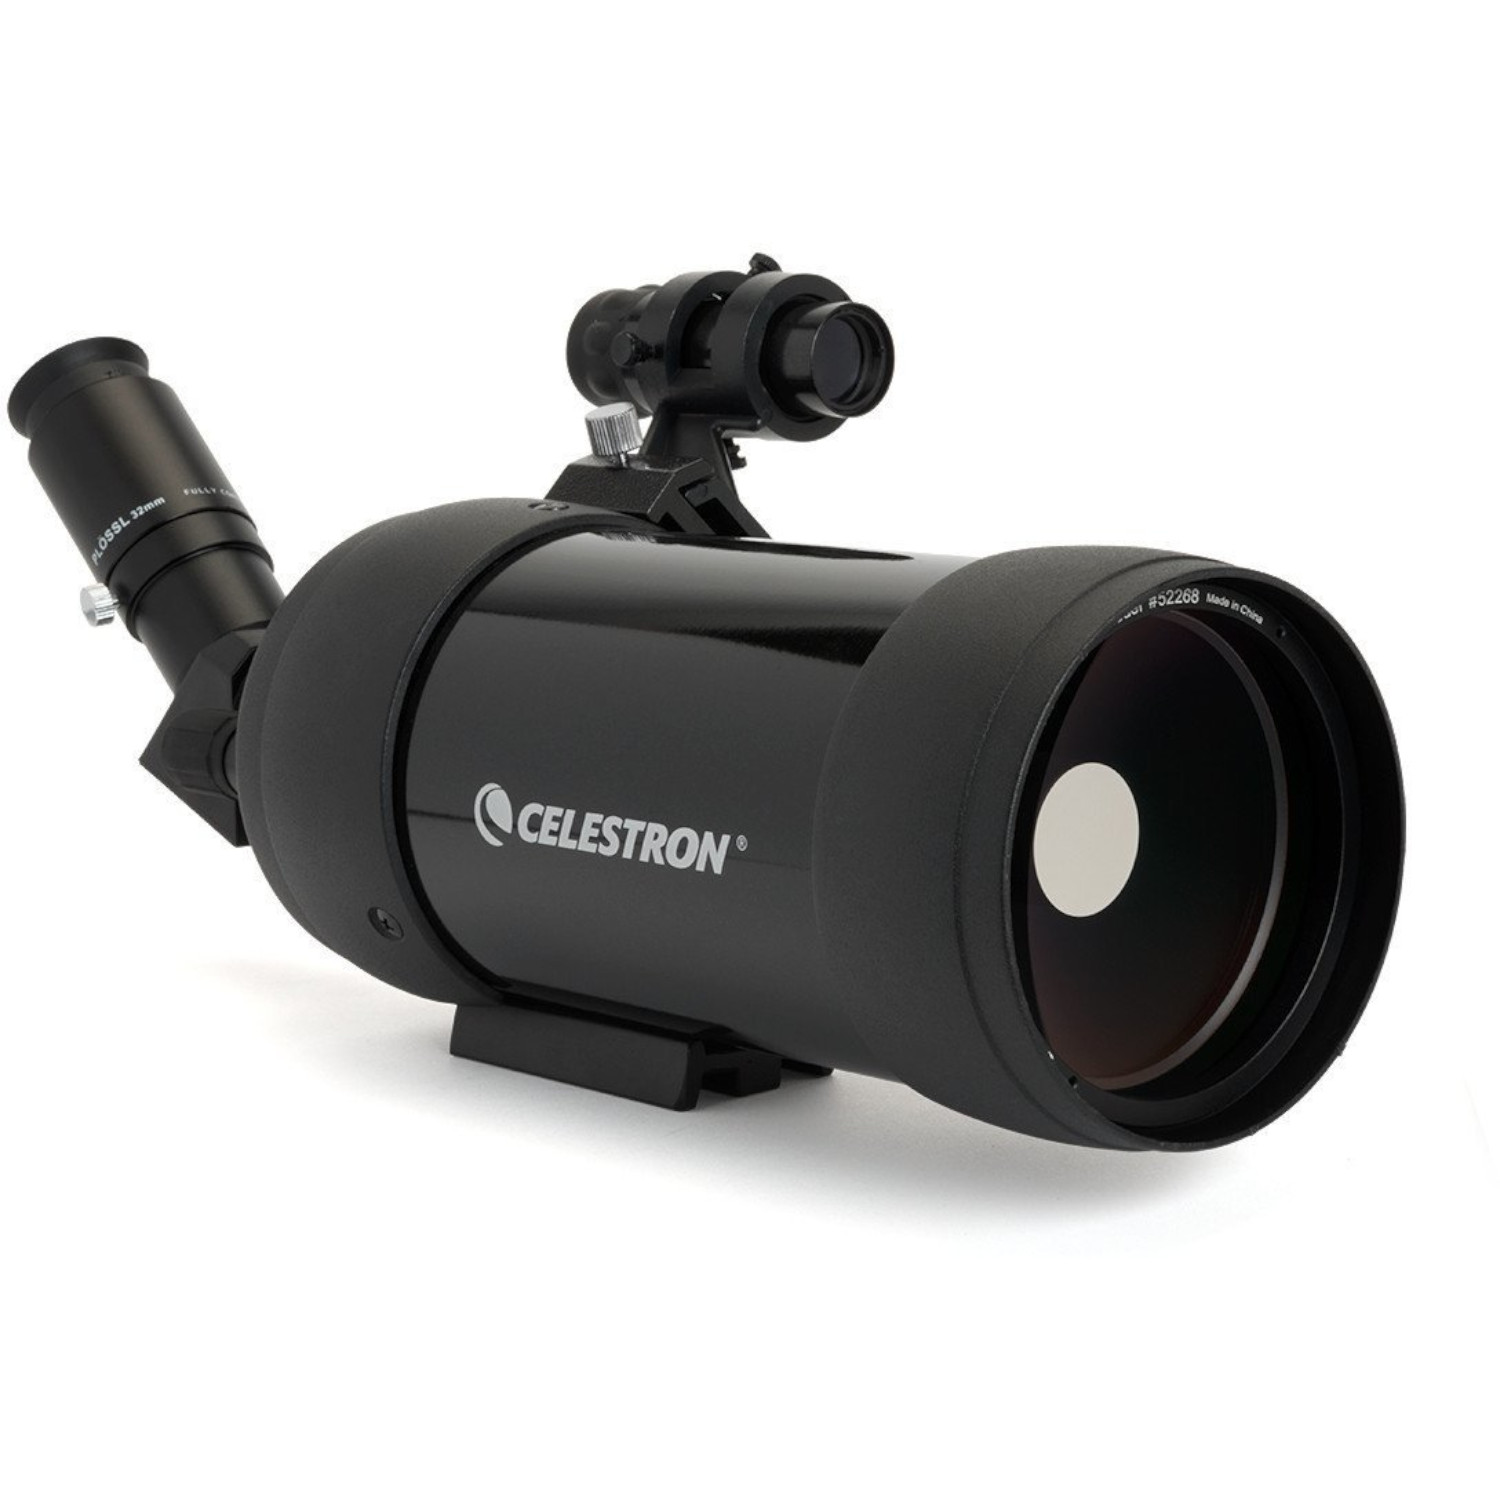 CELESTRON 天体望遠鏡 C90 Mak Spotting Scope